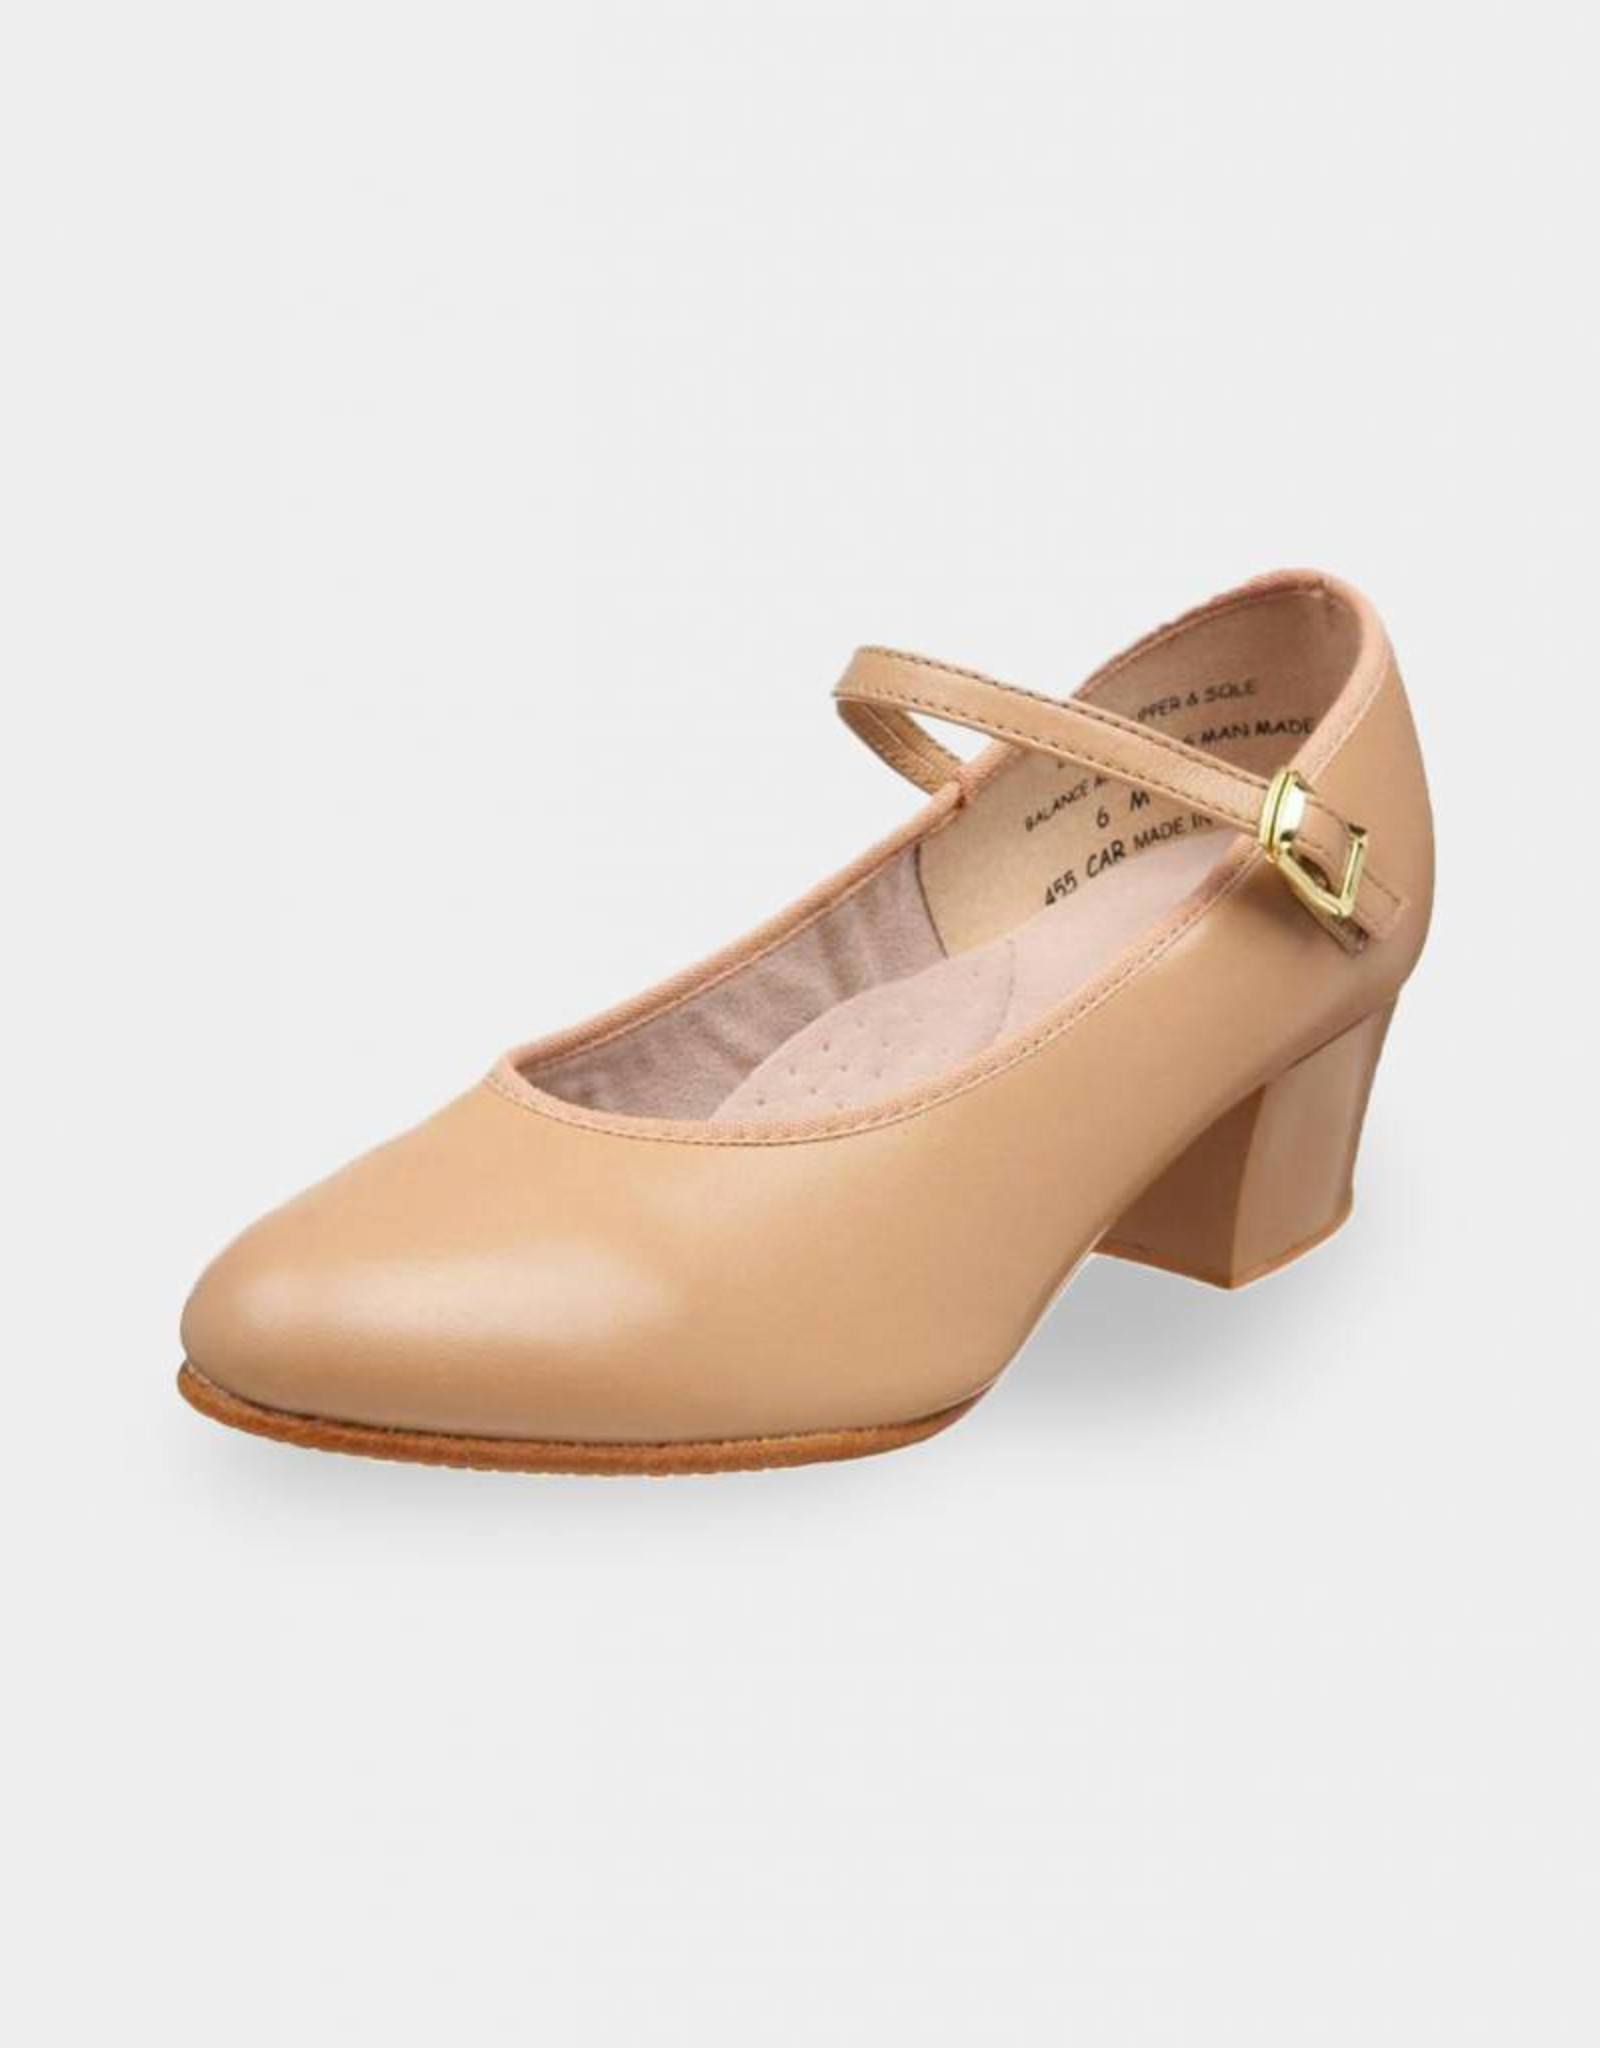 "CAPEZIO LILINA CUBAN HEEL LEATHER 1.5"" CHARACTER SHOES (455)"